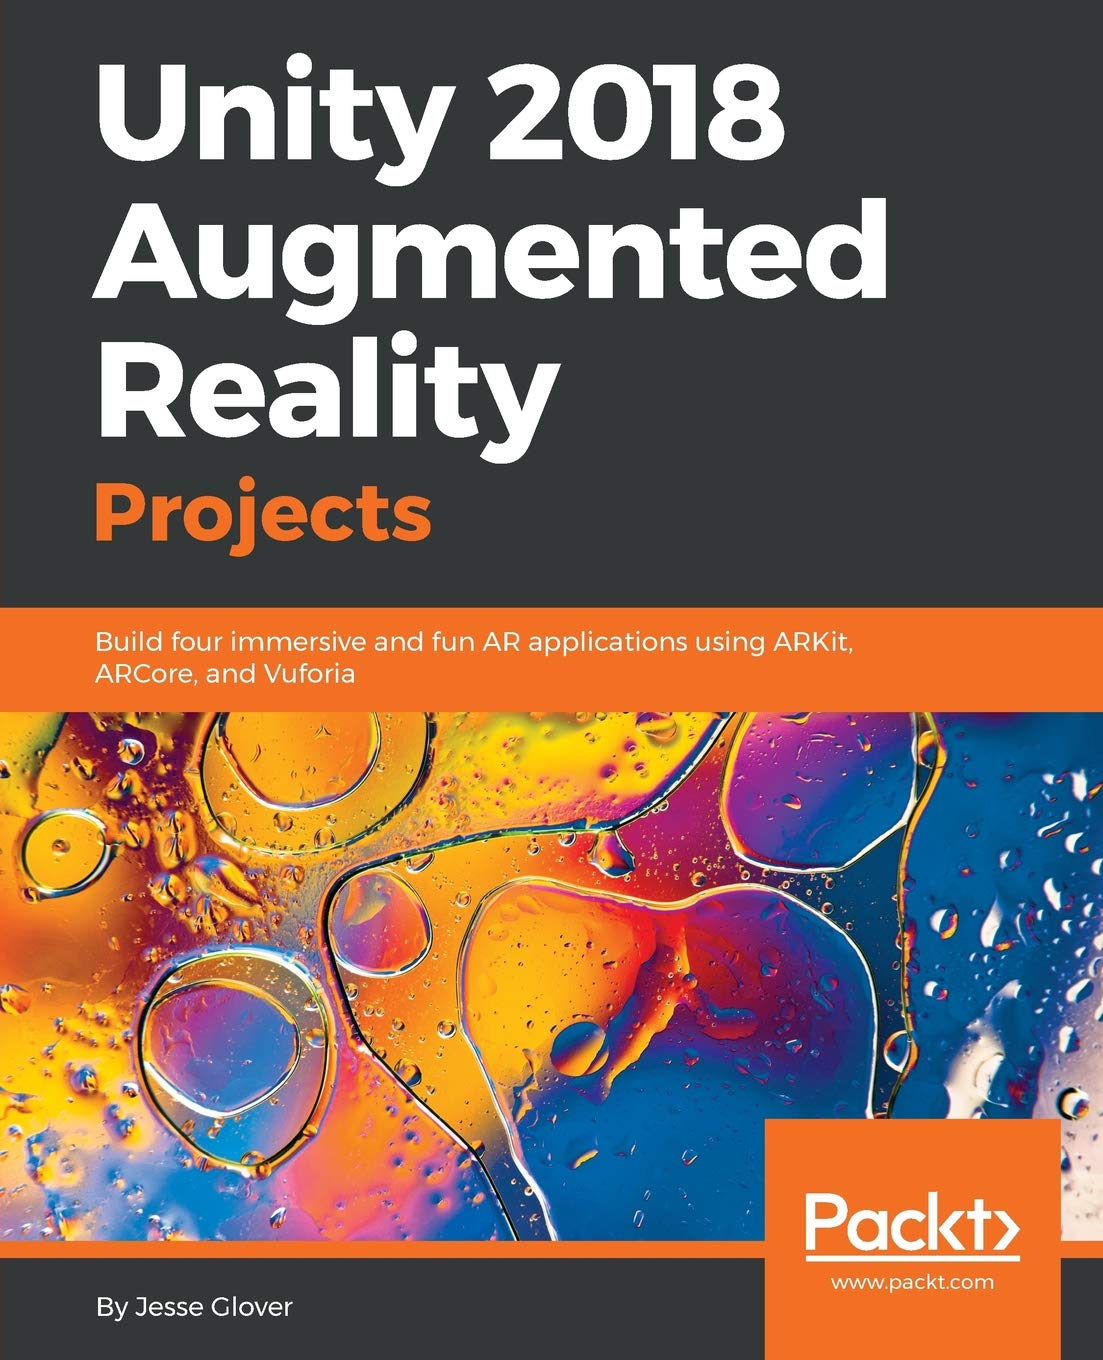 Buy Unity 2018 Augmented Reality Projects: Build four immersive and